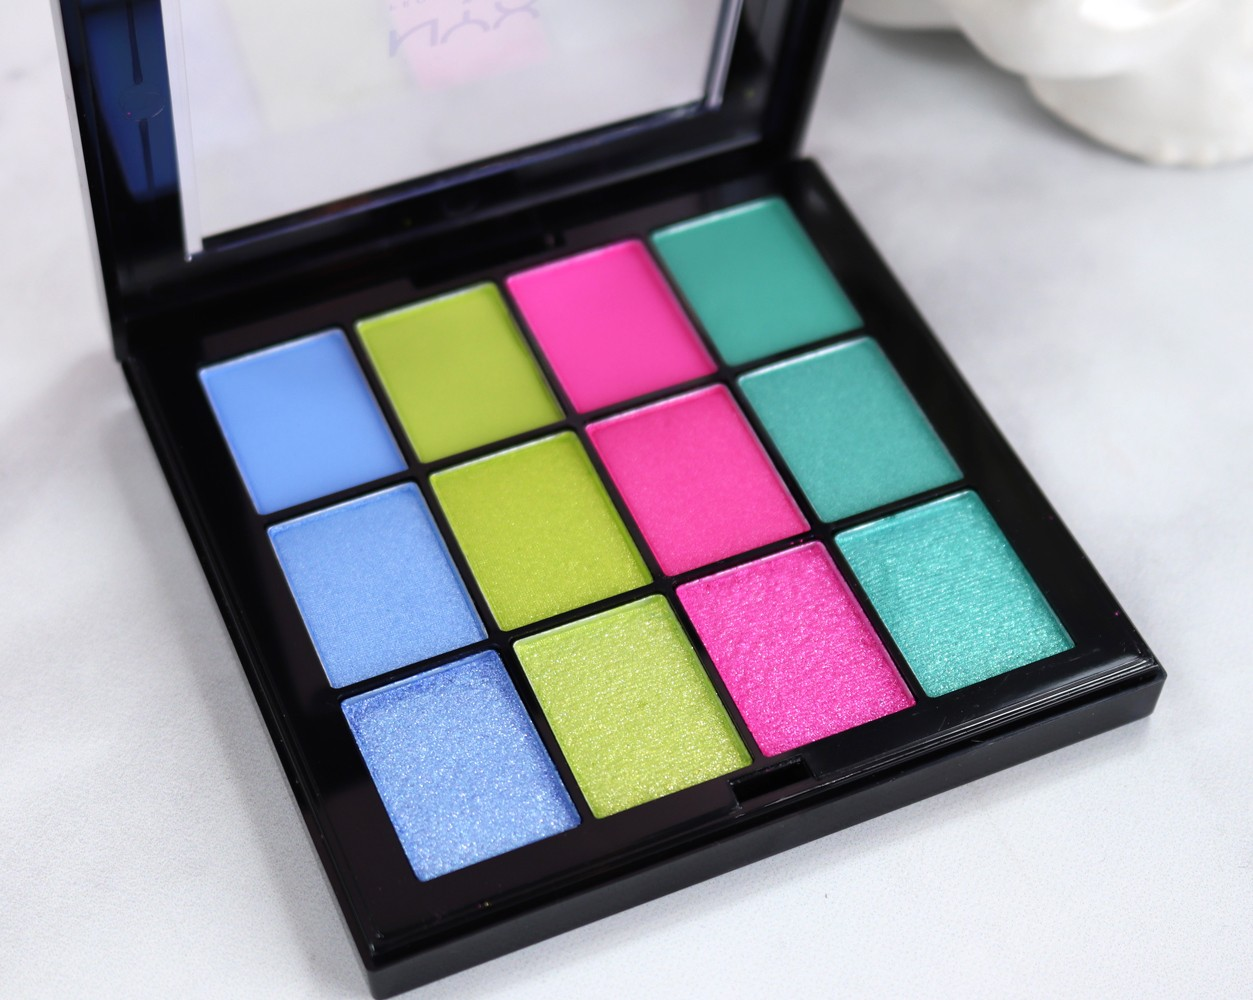 NYX Ultimate Electric Palette - Coachella Music Festival Makeup Ideas by Cruelty Free Beauty Blogger My Beauty Bunny